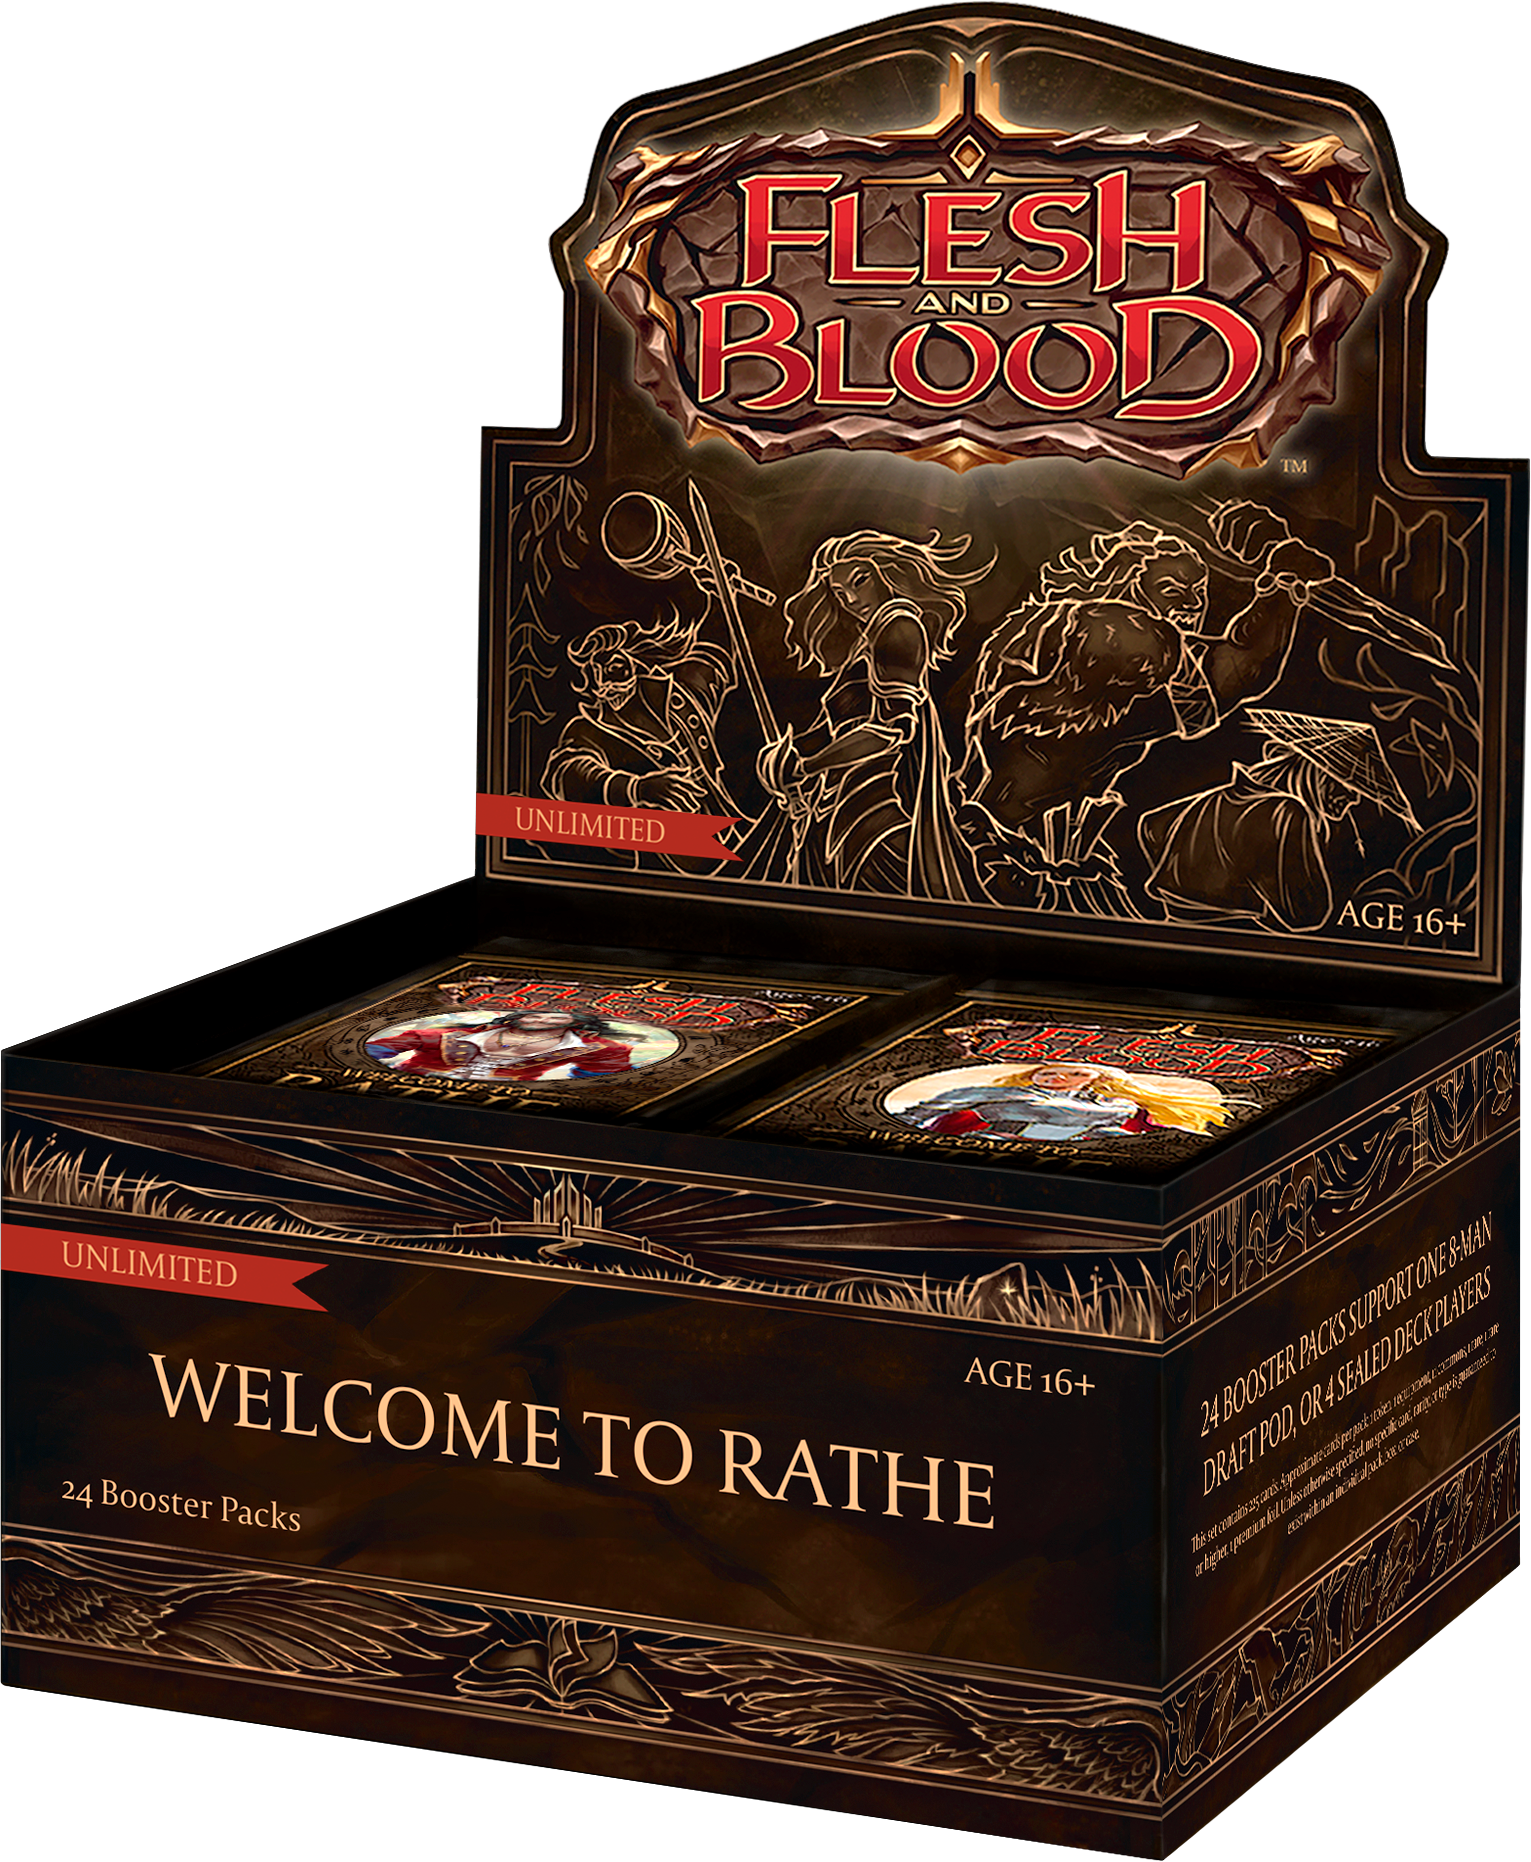 Welcome to Rathe Booster Box - Unlimited - Flesh and Blood - Ships 11/16/2020